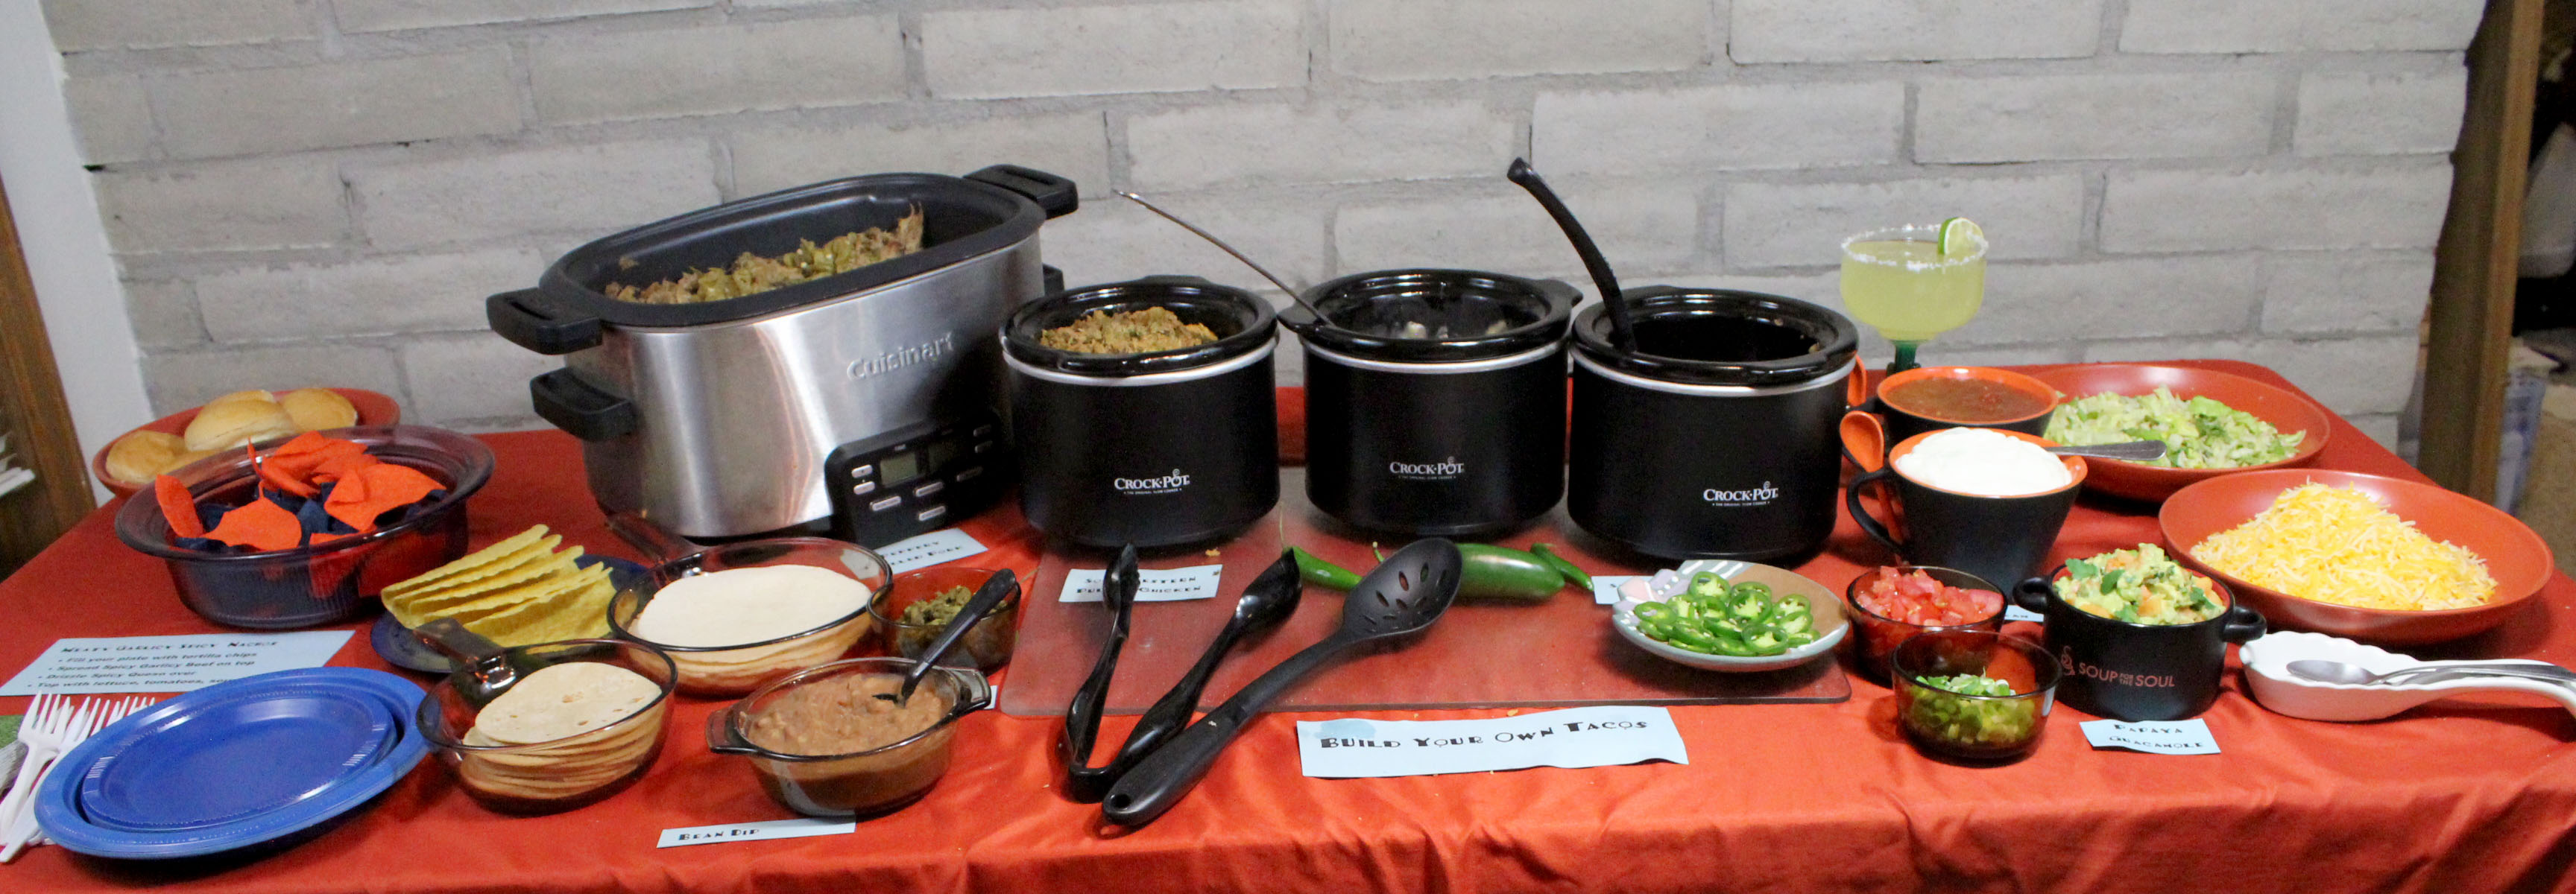 Set up a Taco Bar for a Winning Super Bowl Party   Denver Green Chili